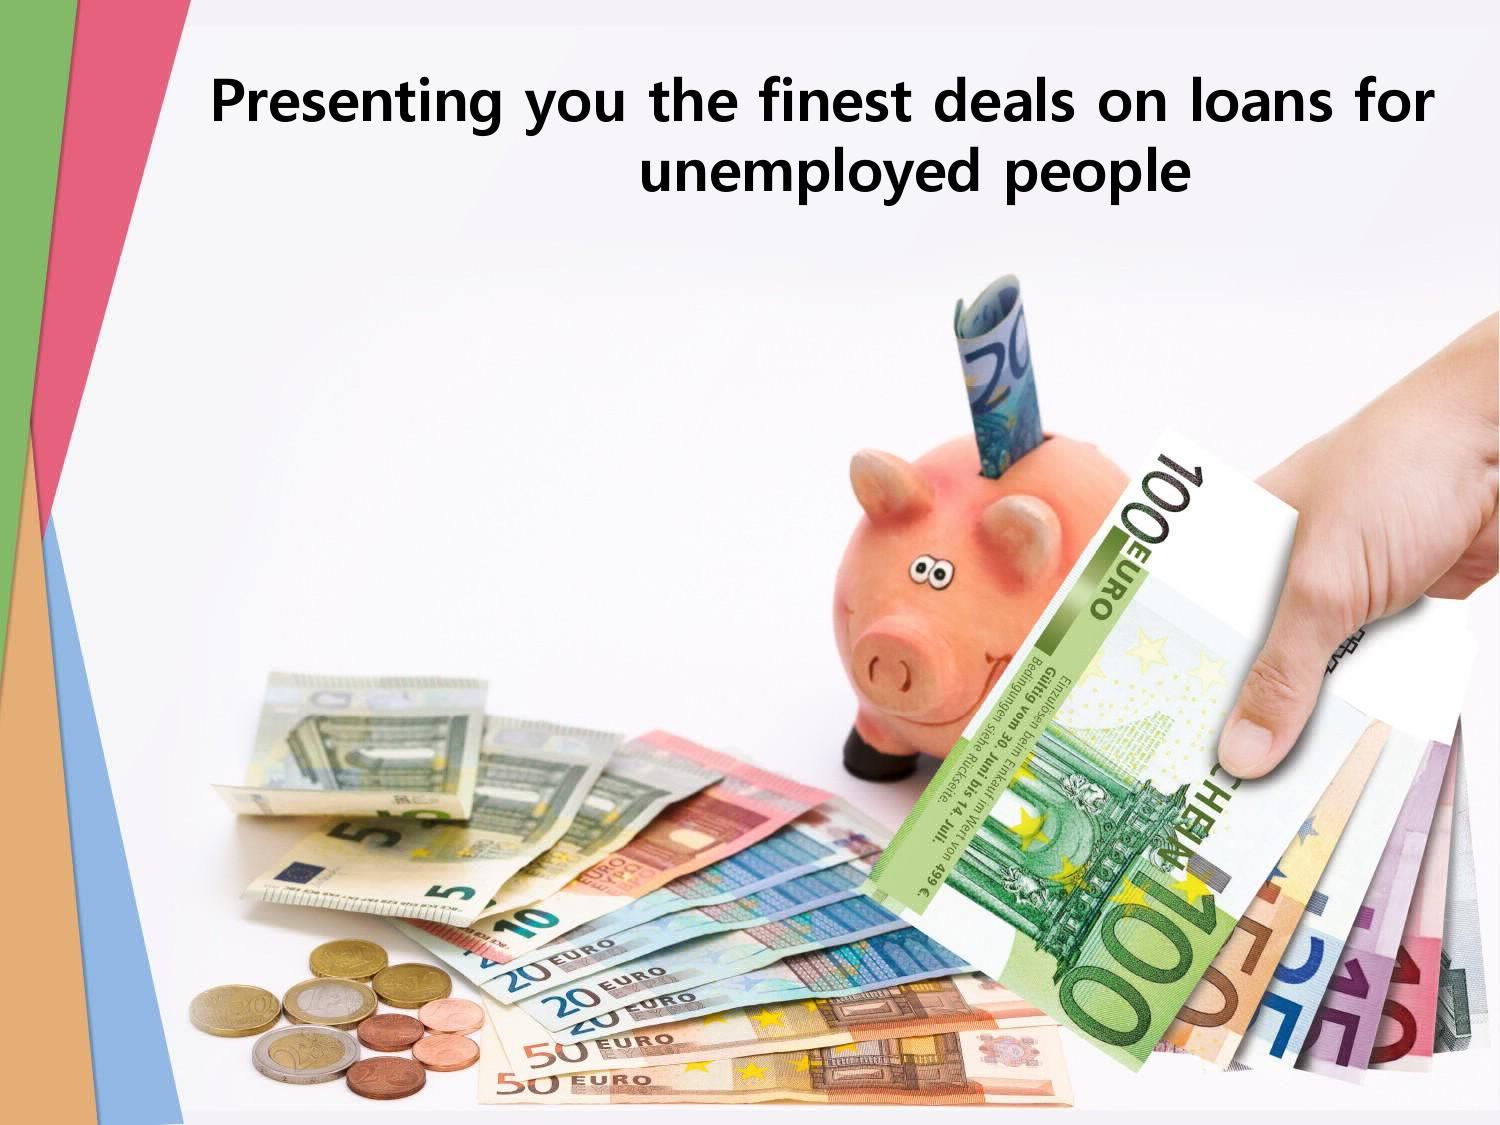 Presenting You The Finest Deals On Loans For Unemployed People